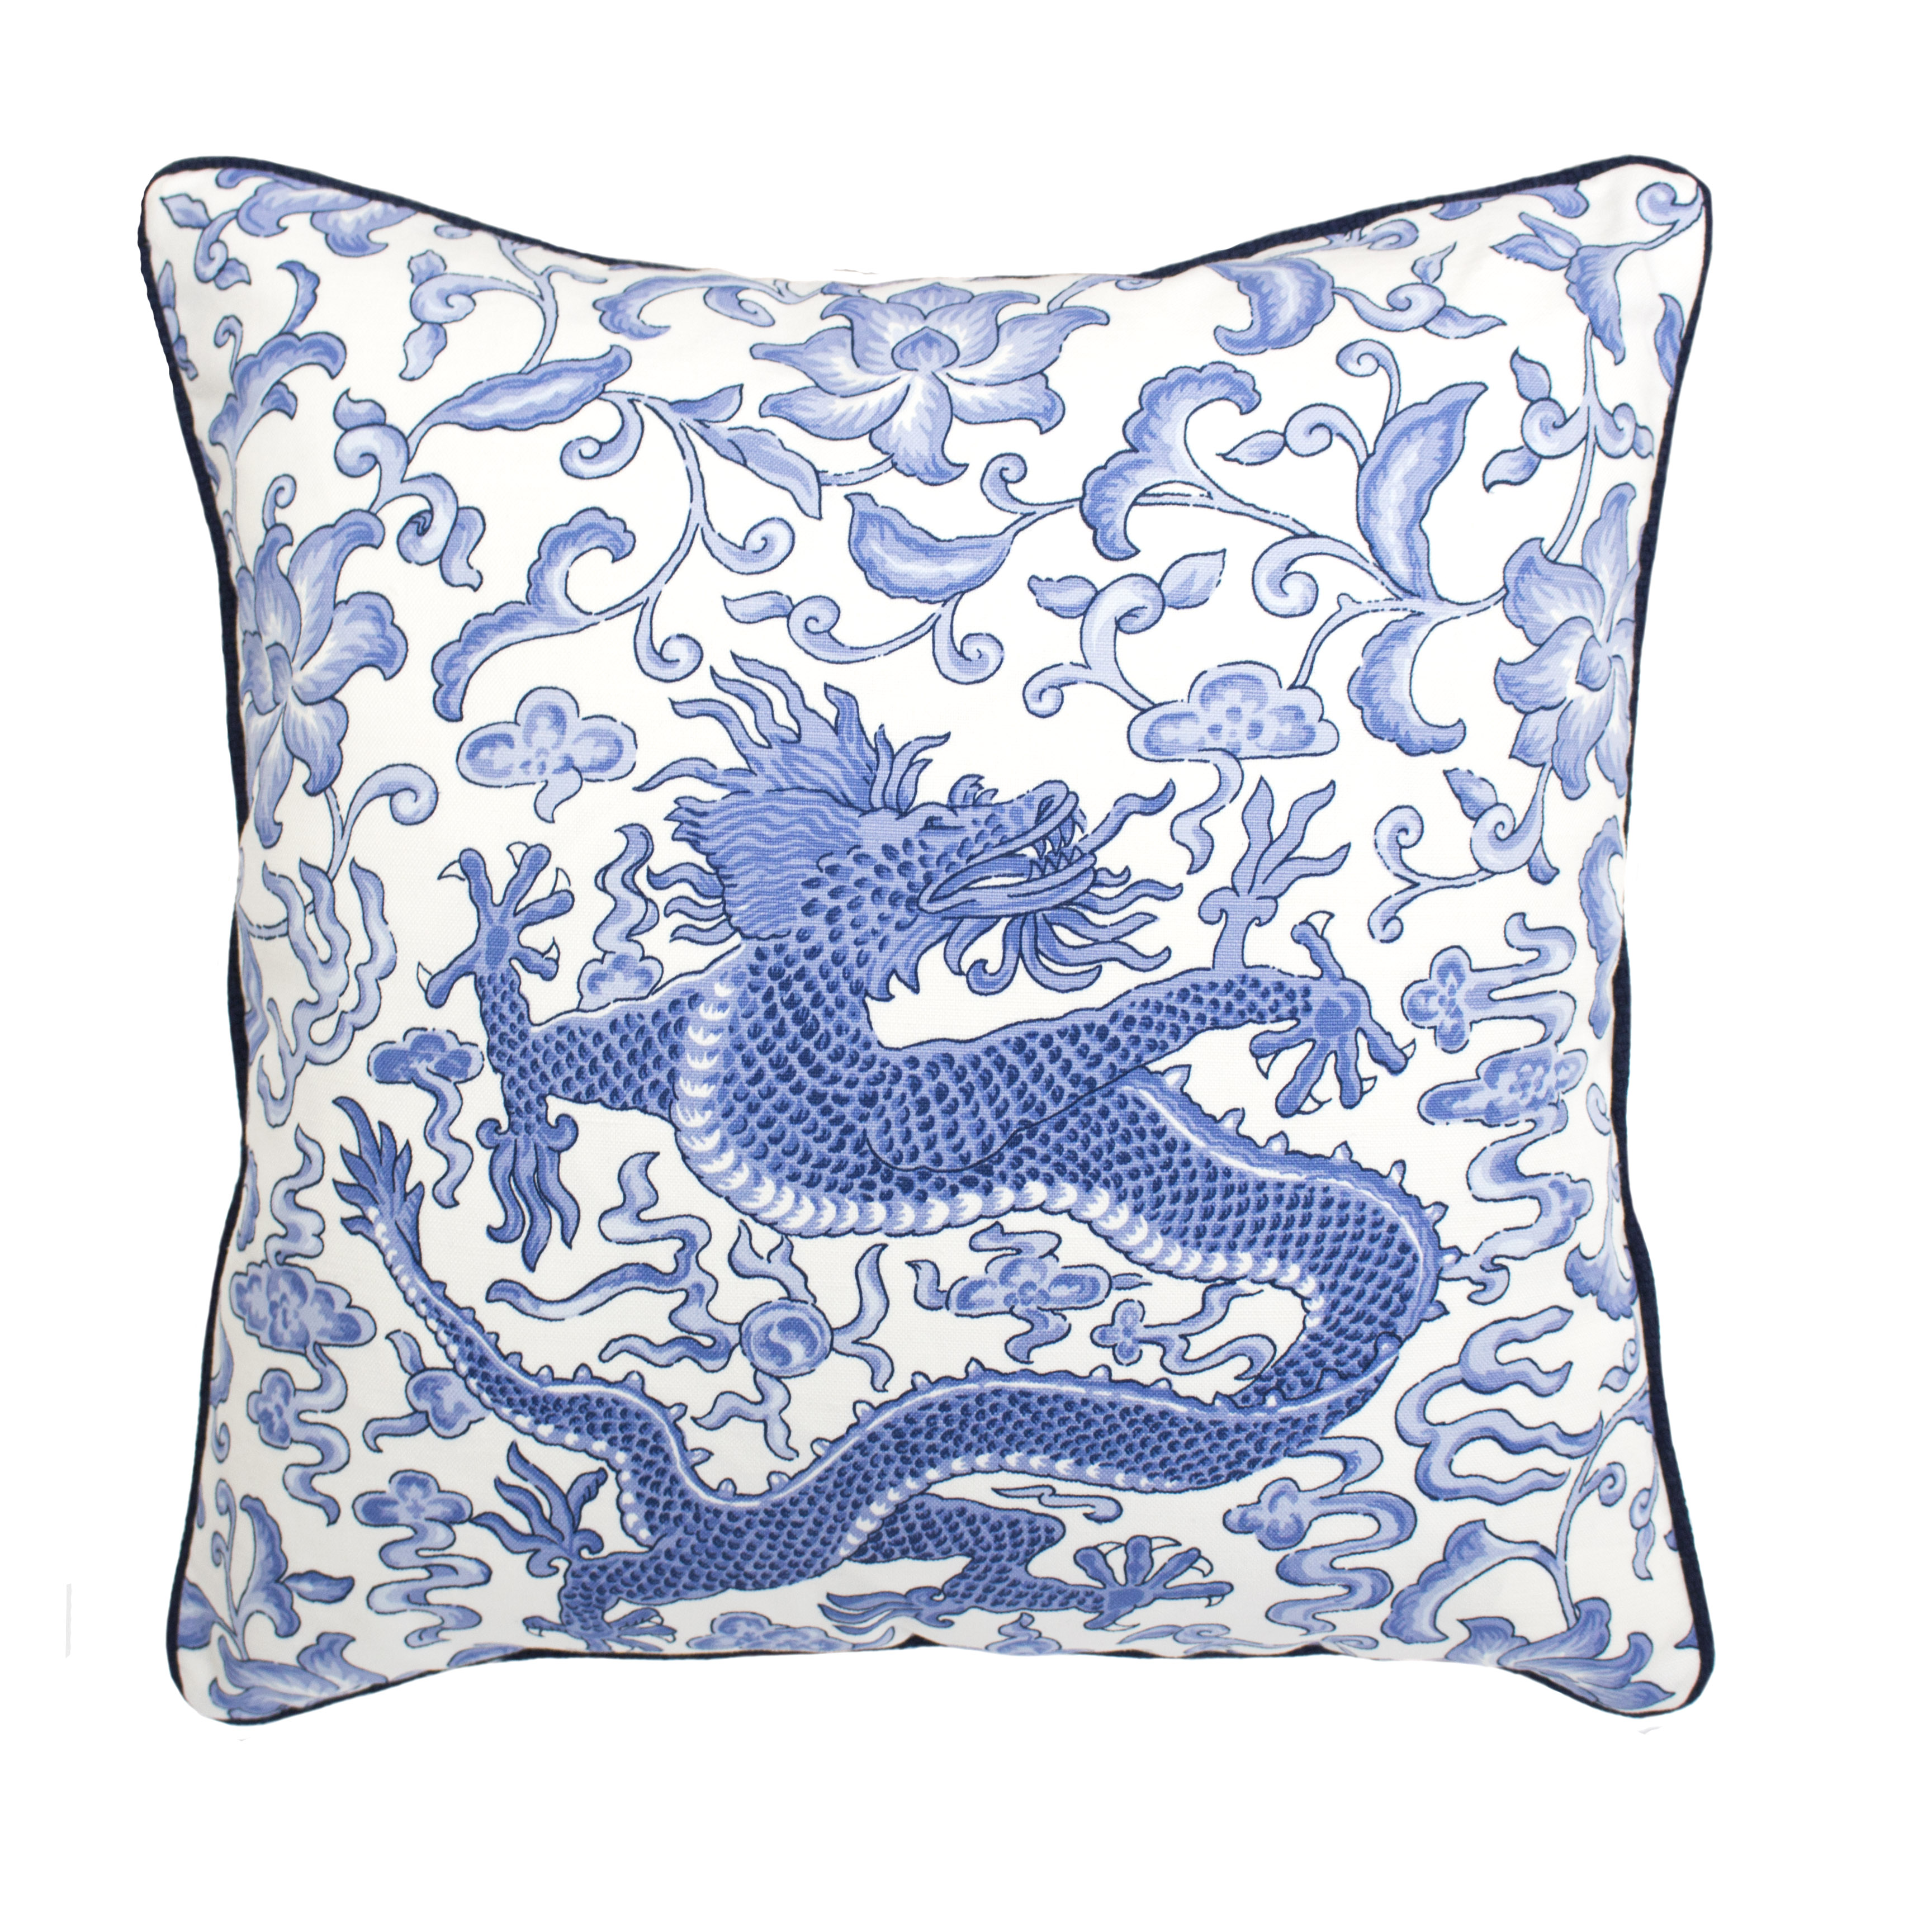 SCALAMANDRE DRAGON PILLOW - BLUE